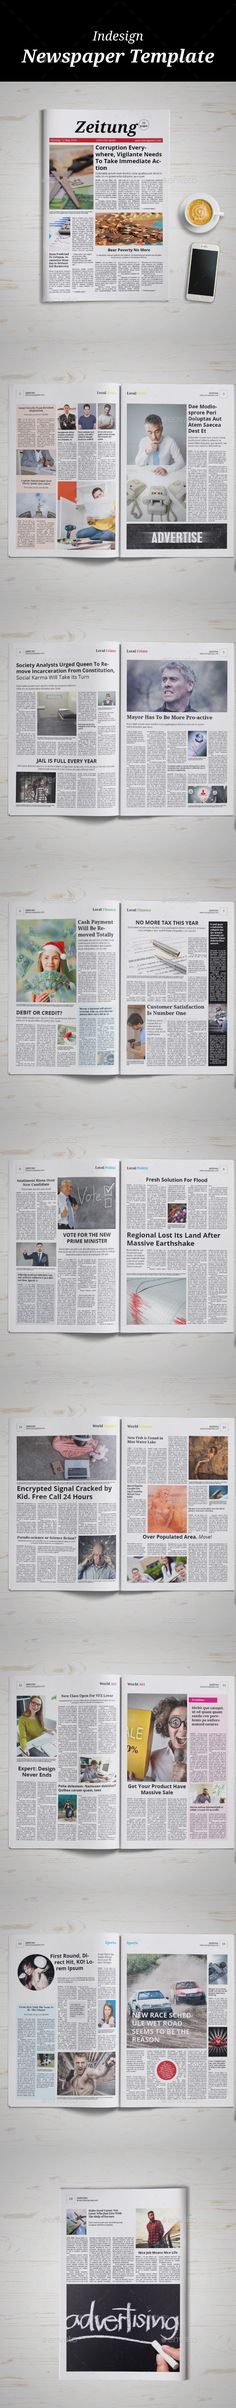 102 Best Newspaper Newsletters Print Templates Images On